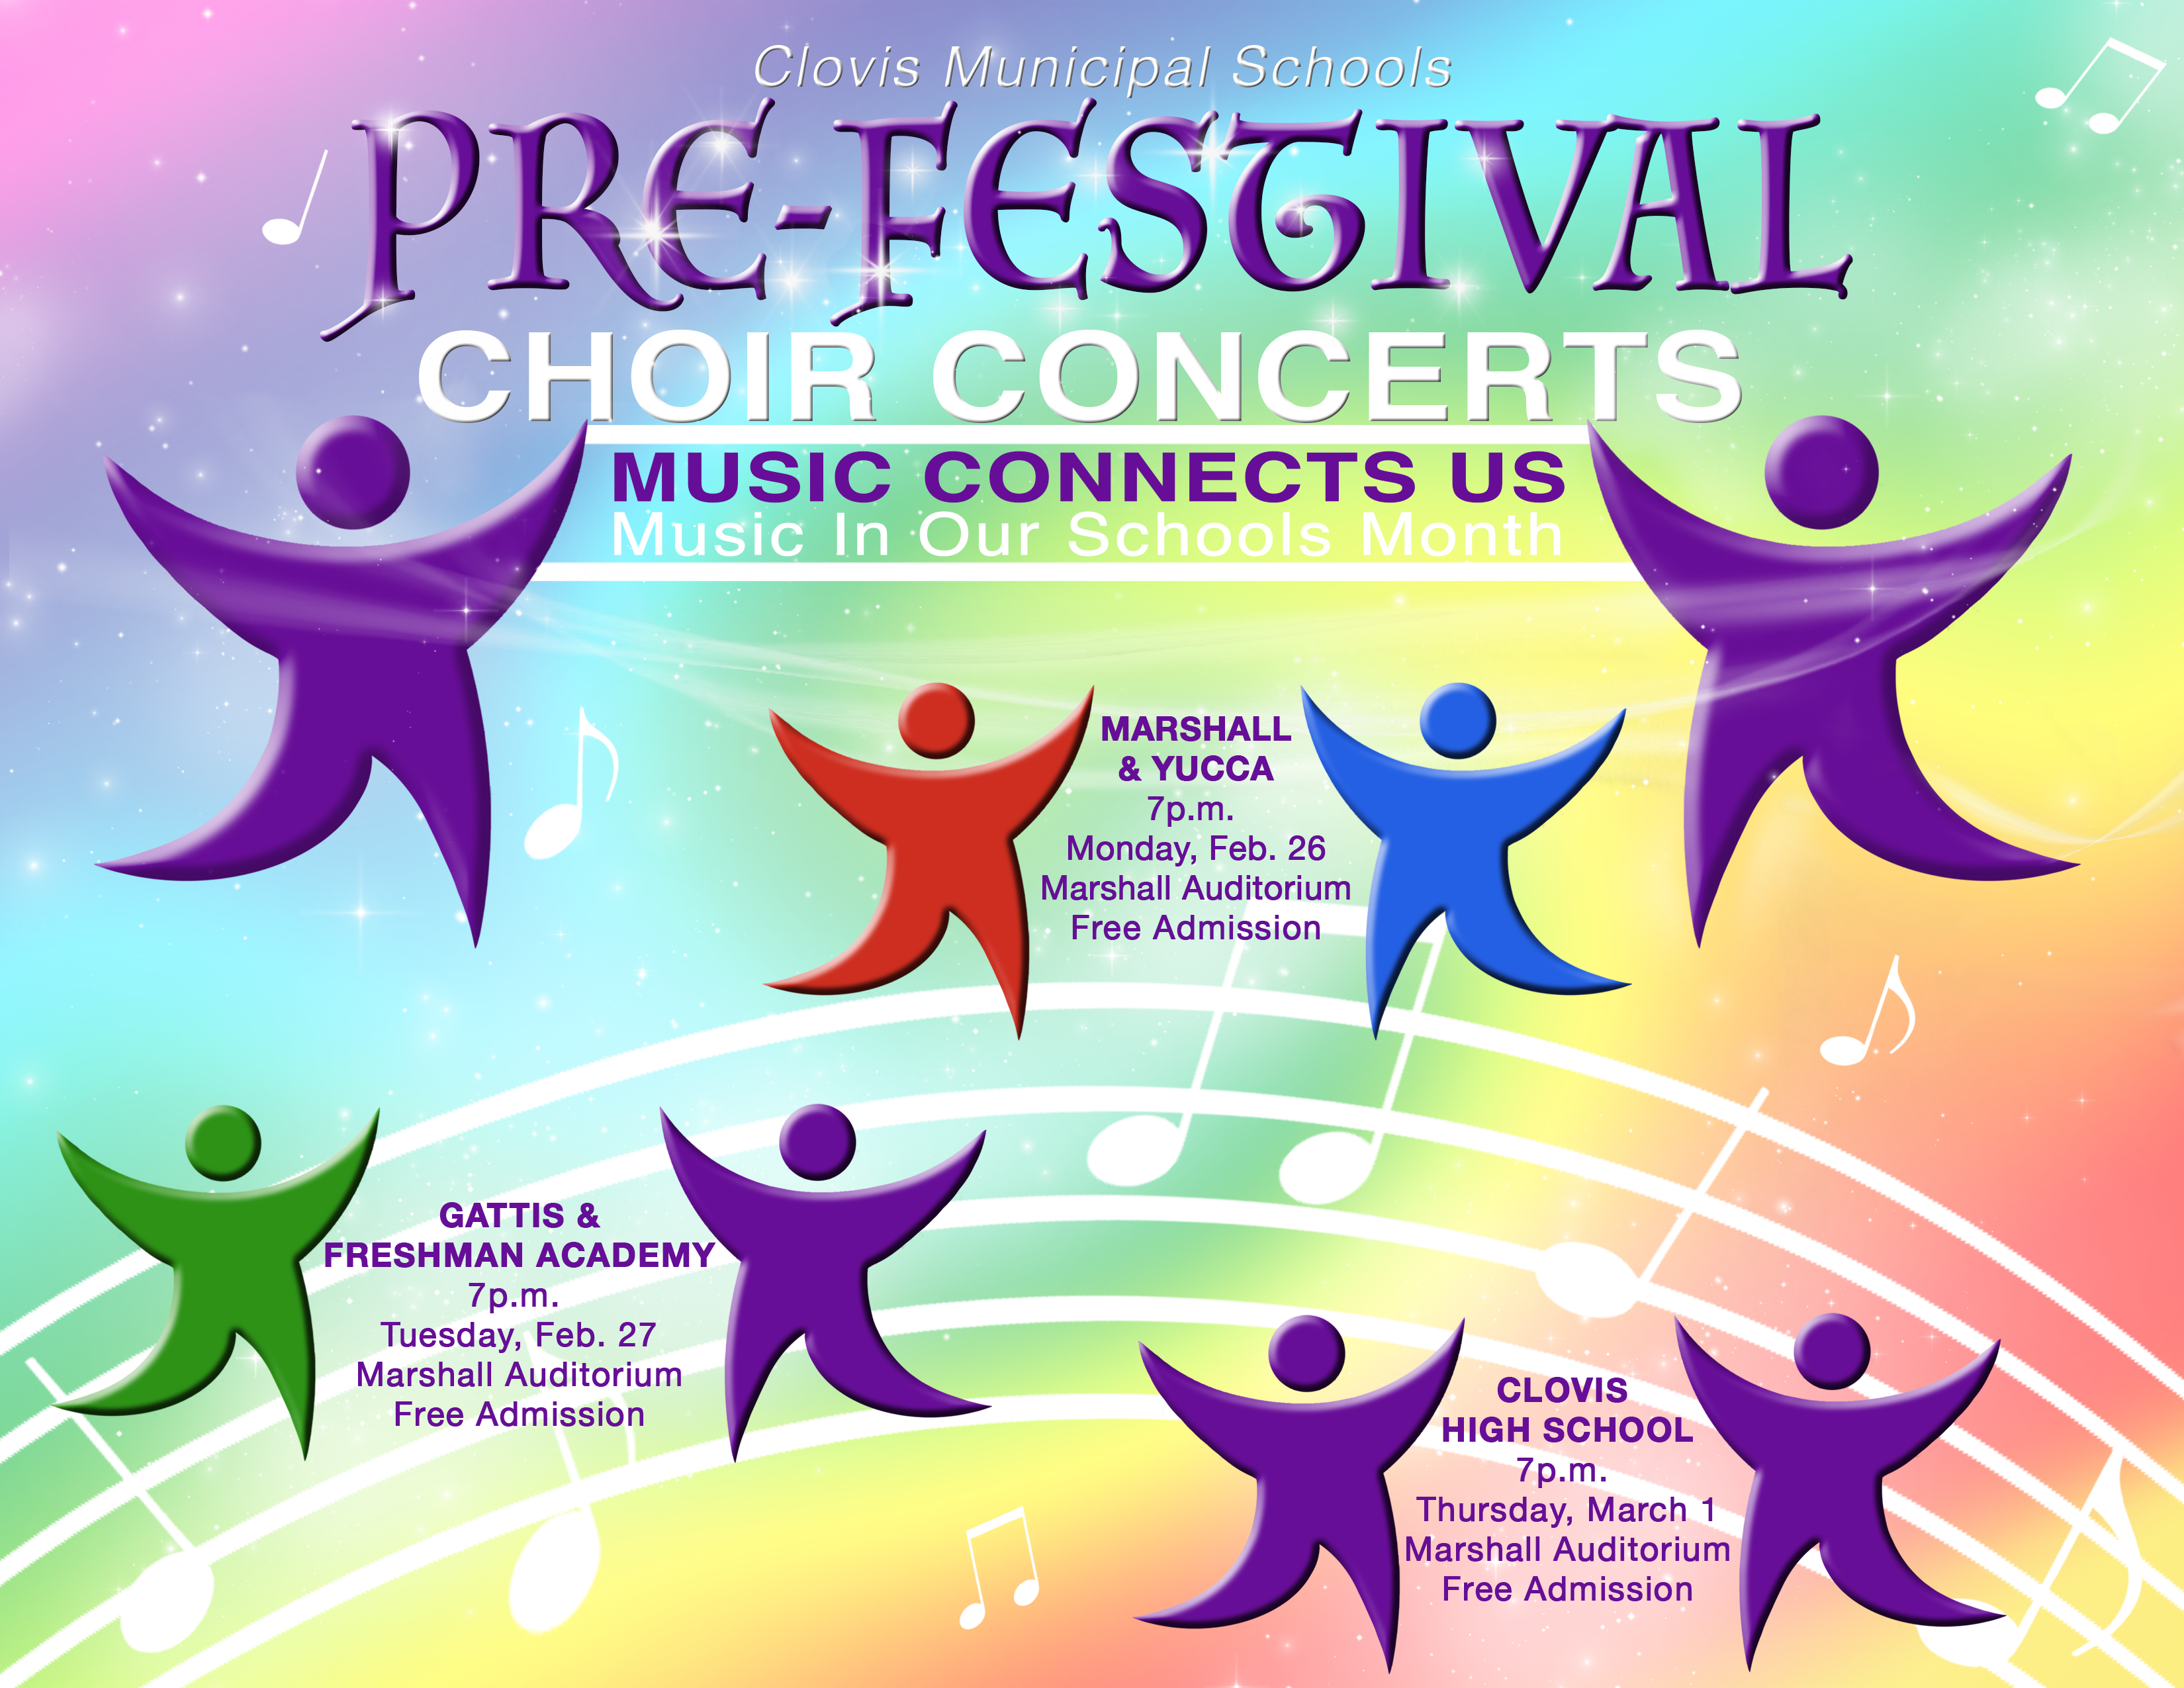 Image announcing three choir concerts